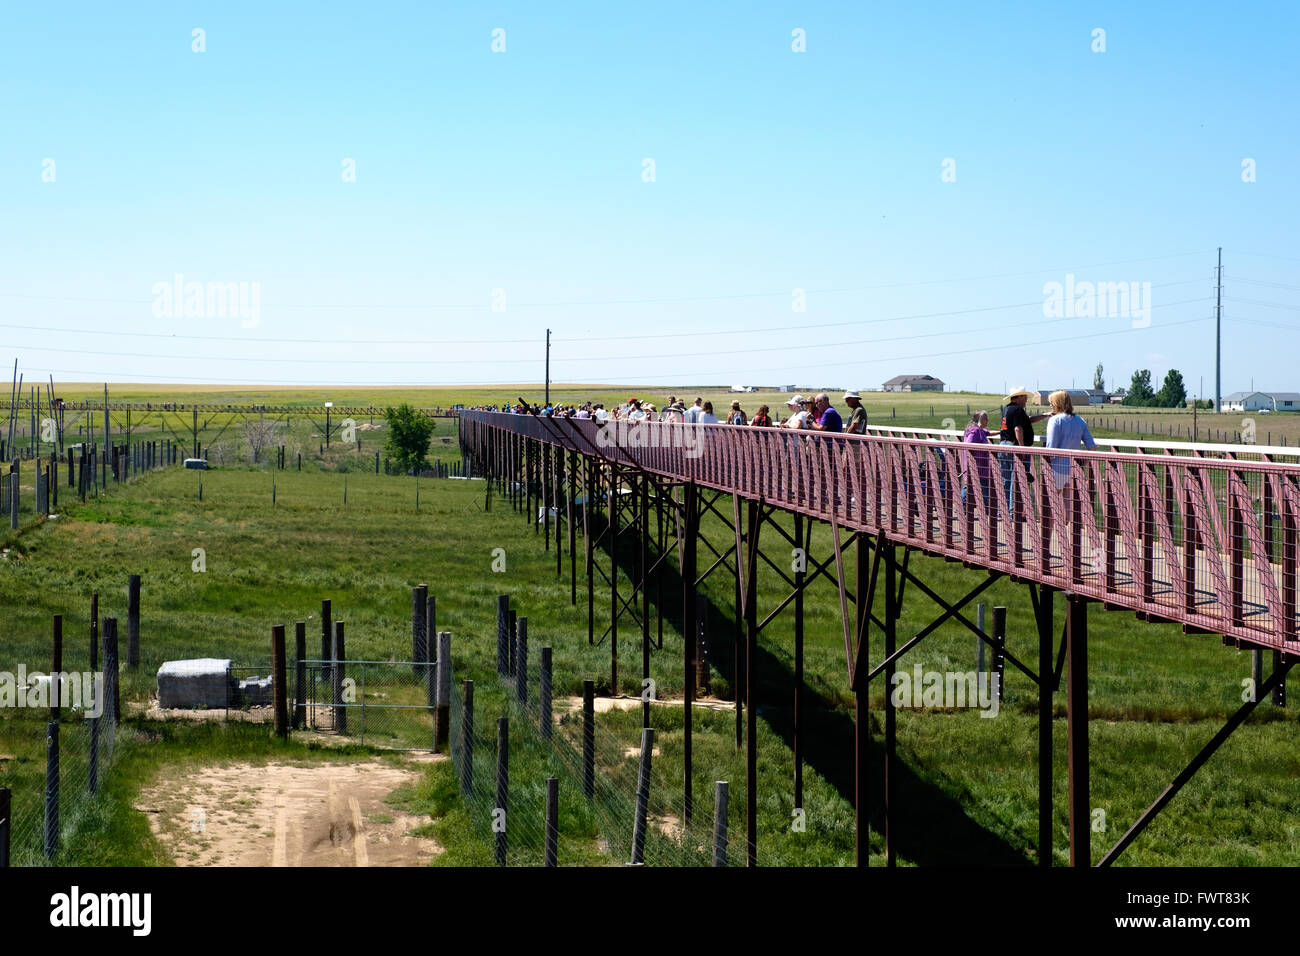 Visitors walk along the viewing area over various animal habitats at The Wild Animal Sanctuary. Stock Photo